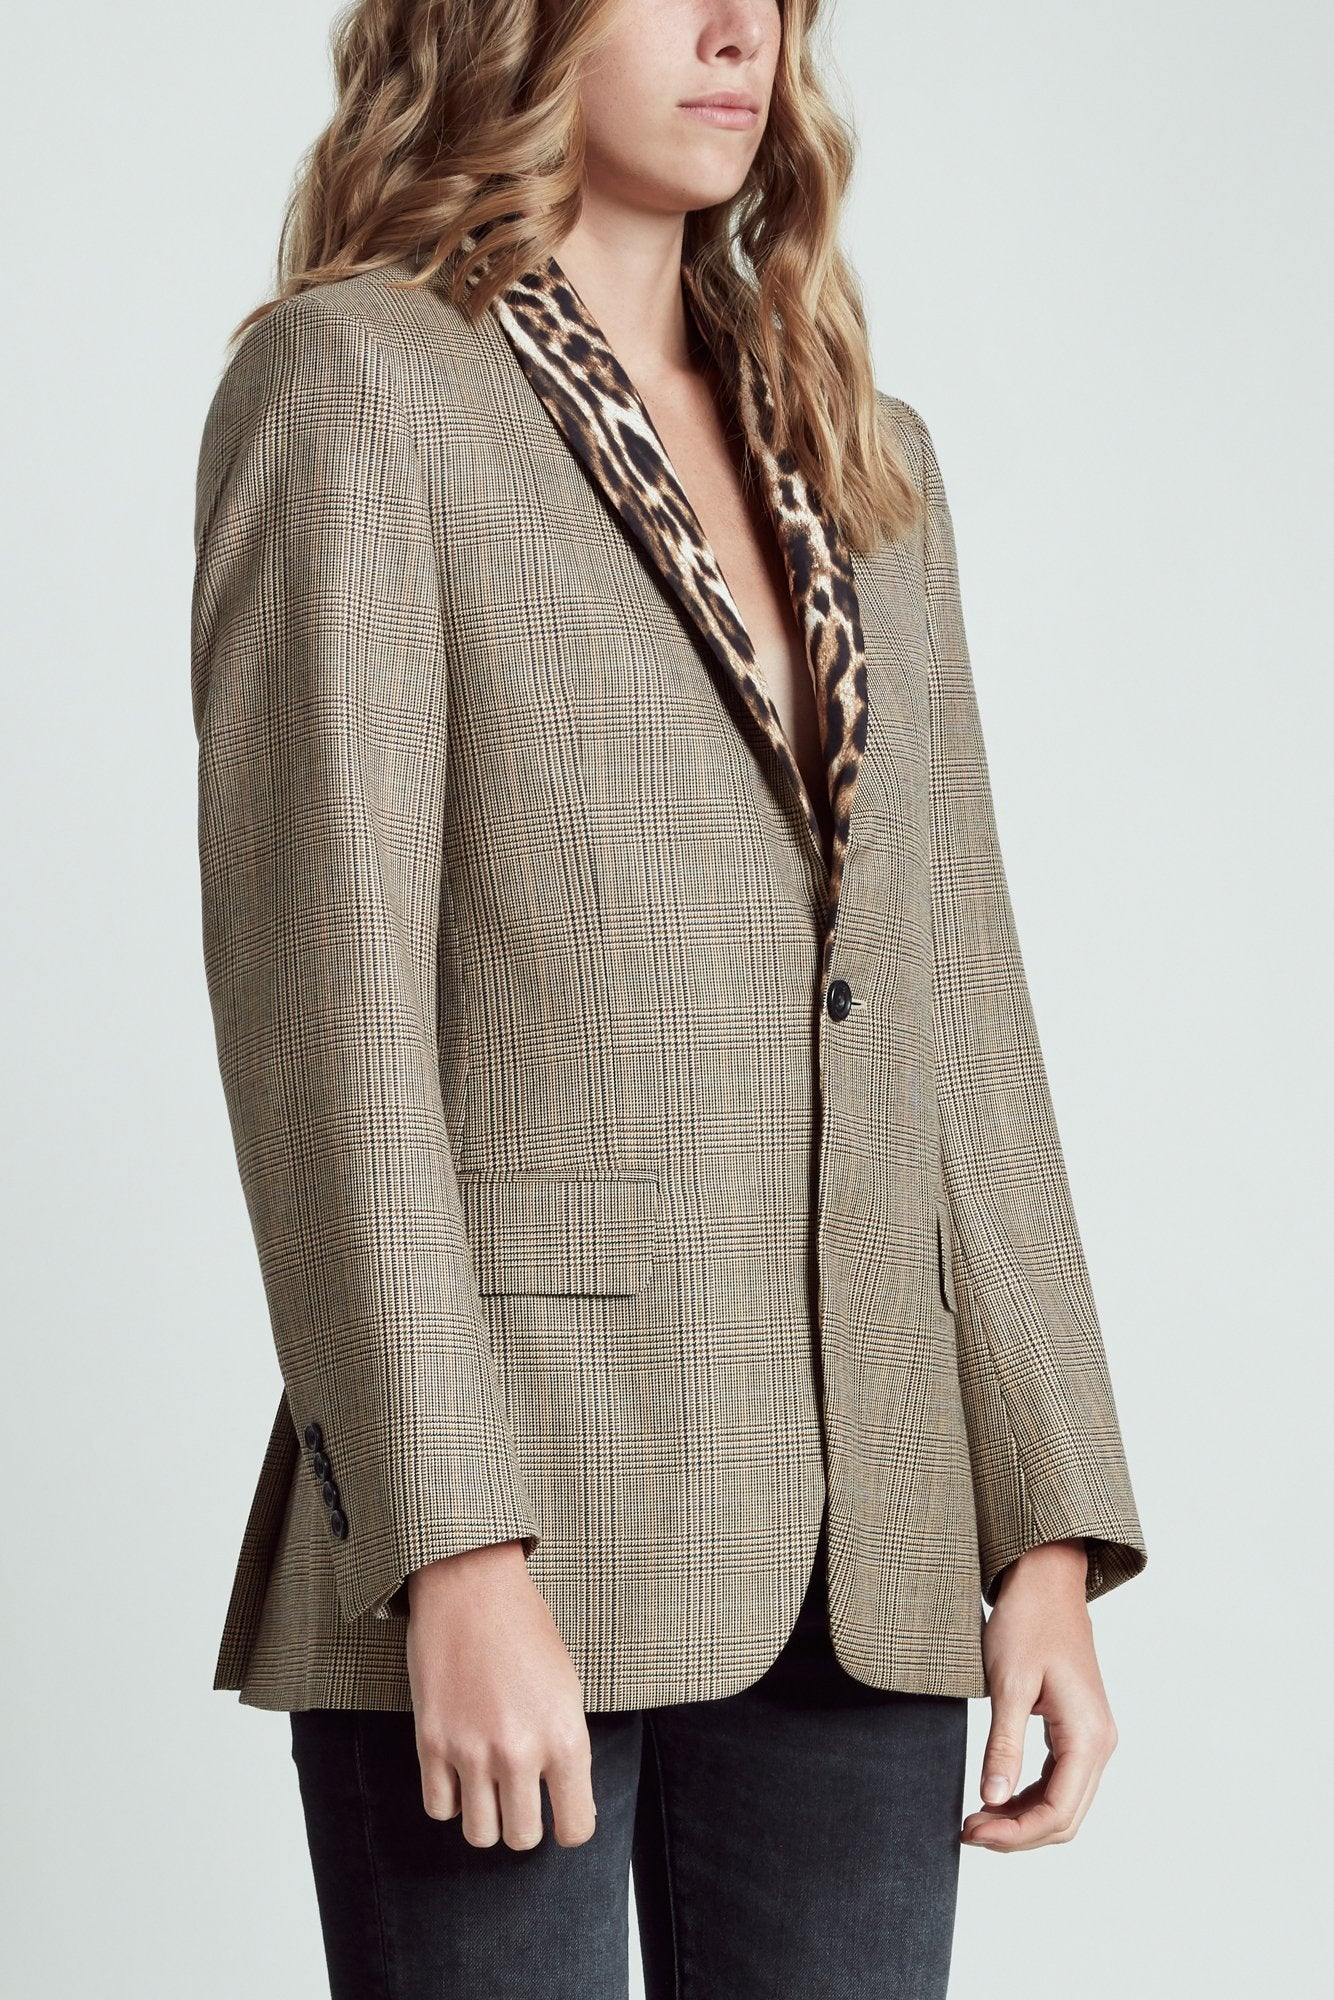 Shawl Lapel Tuxedo - Brown Glenplaid with Leopard